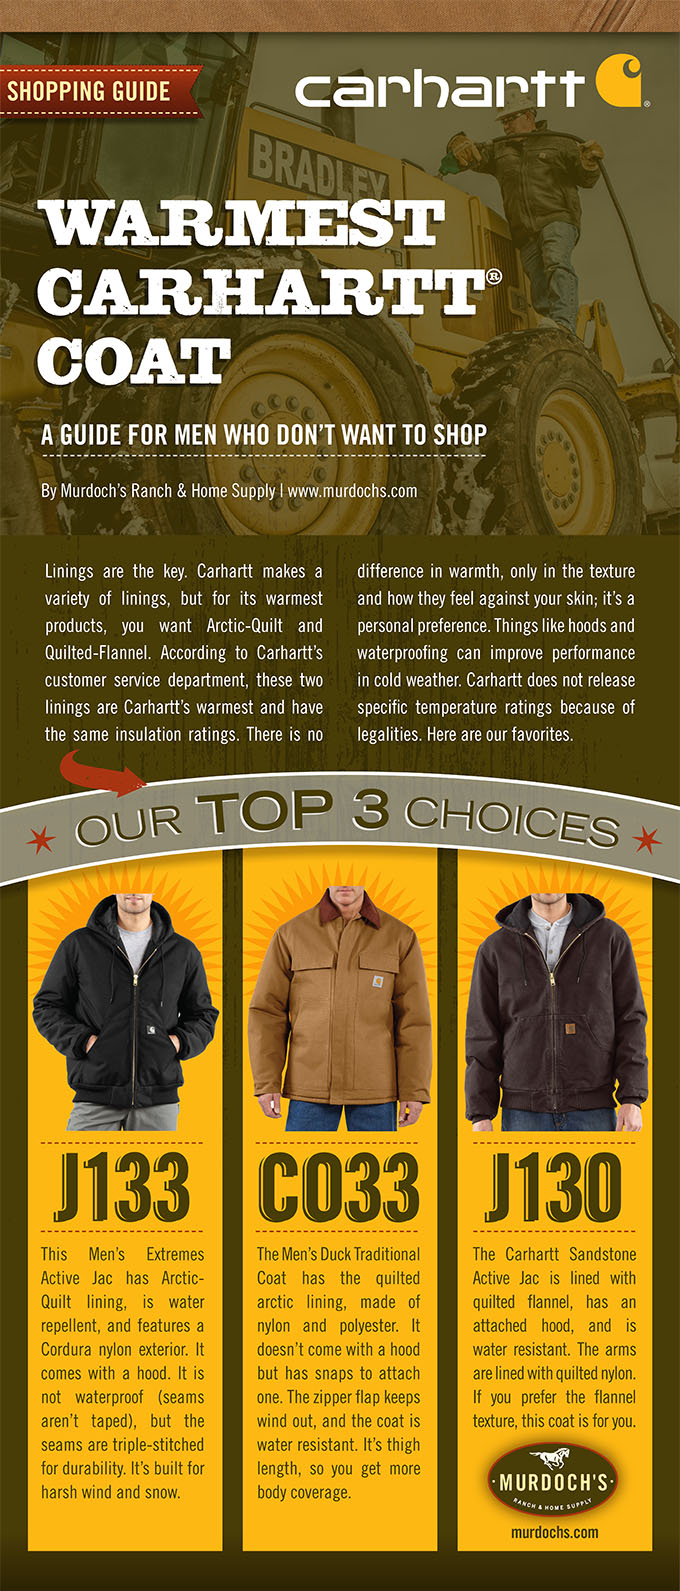 Three of the warmest Carhartt Men's Coats